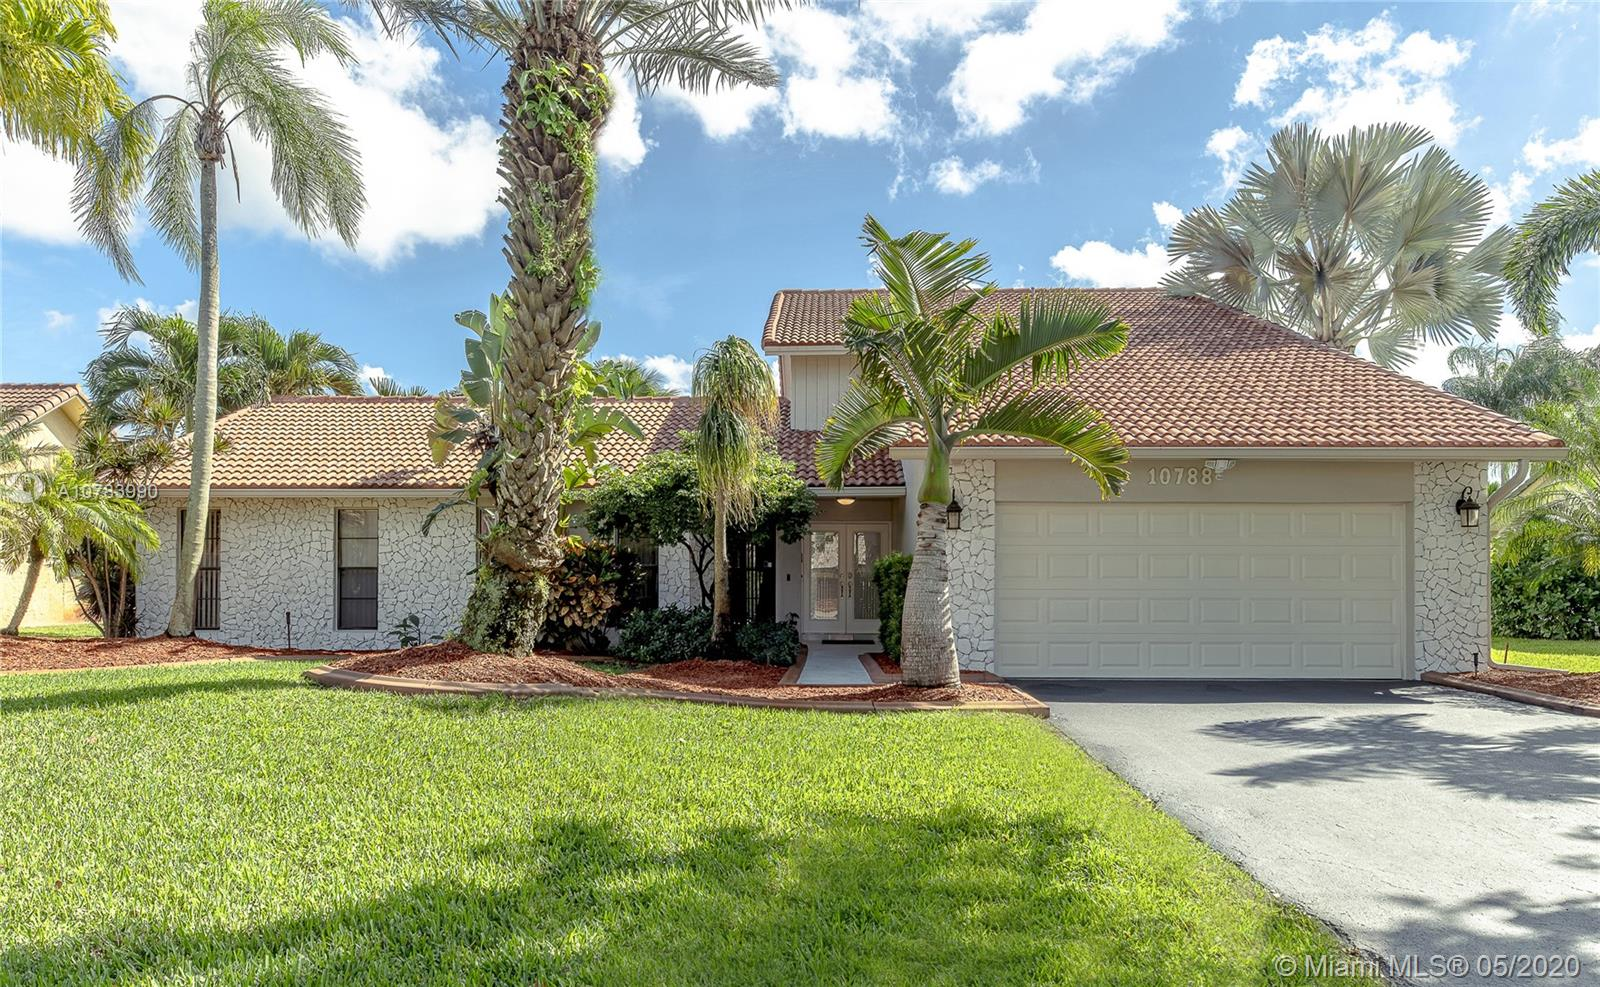 10788 NW 19th Dr, Coral Springs, FL 33071